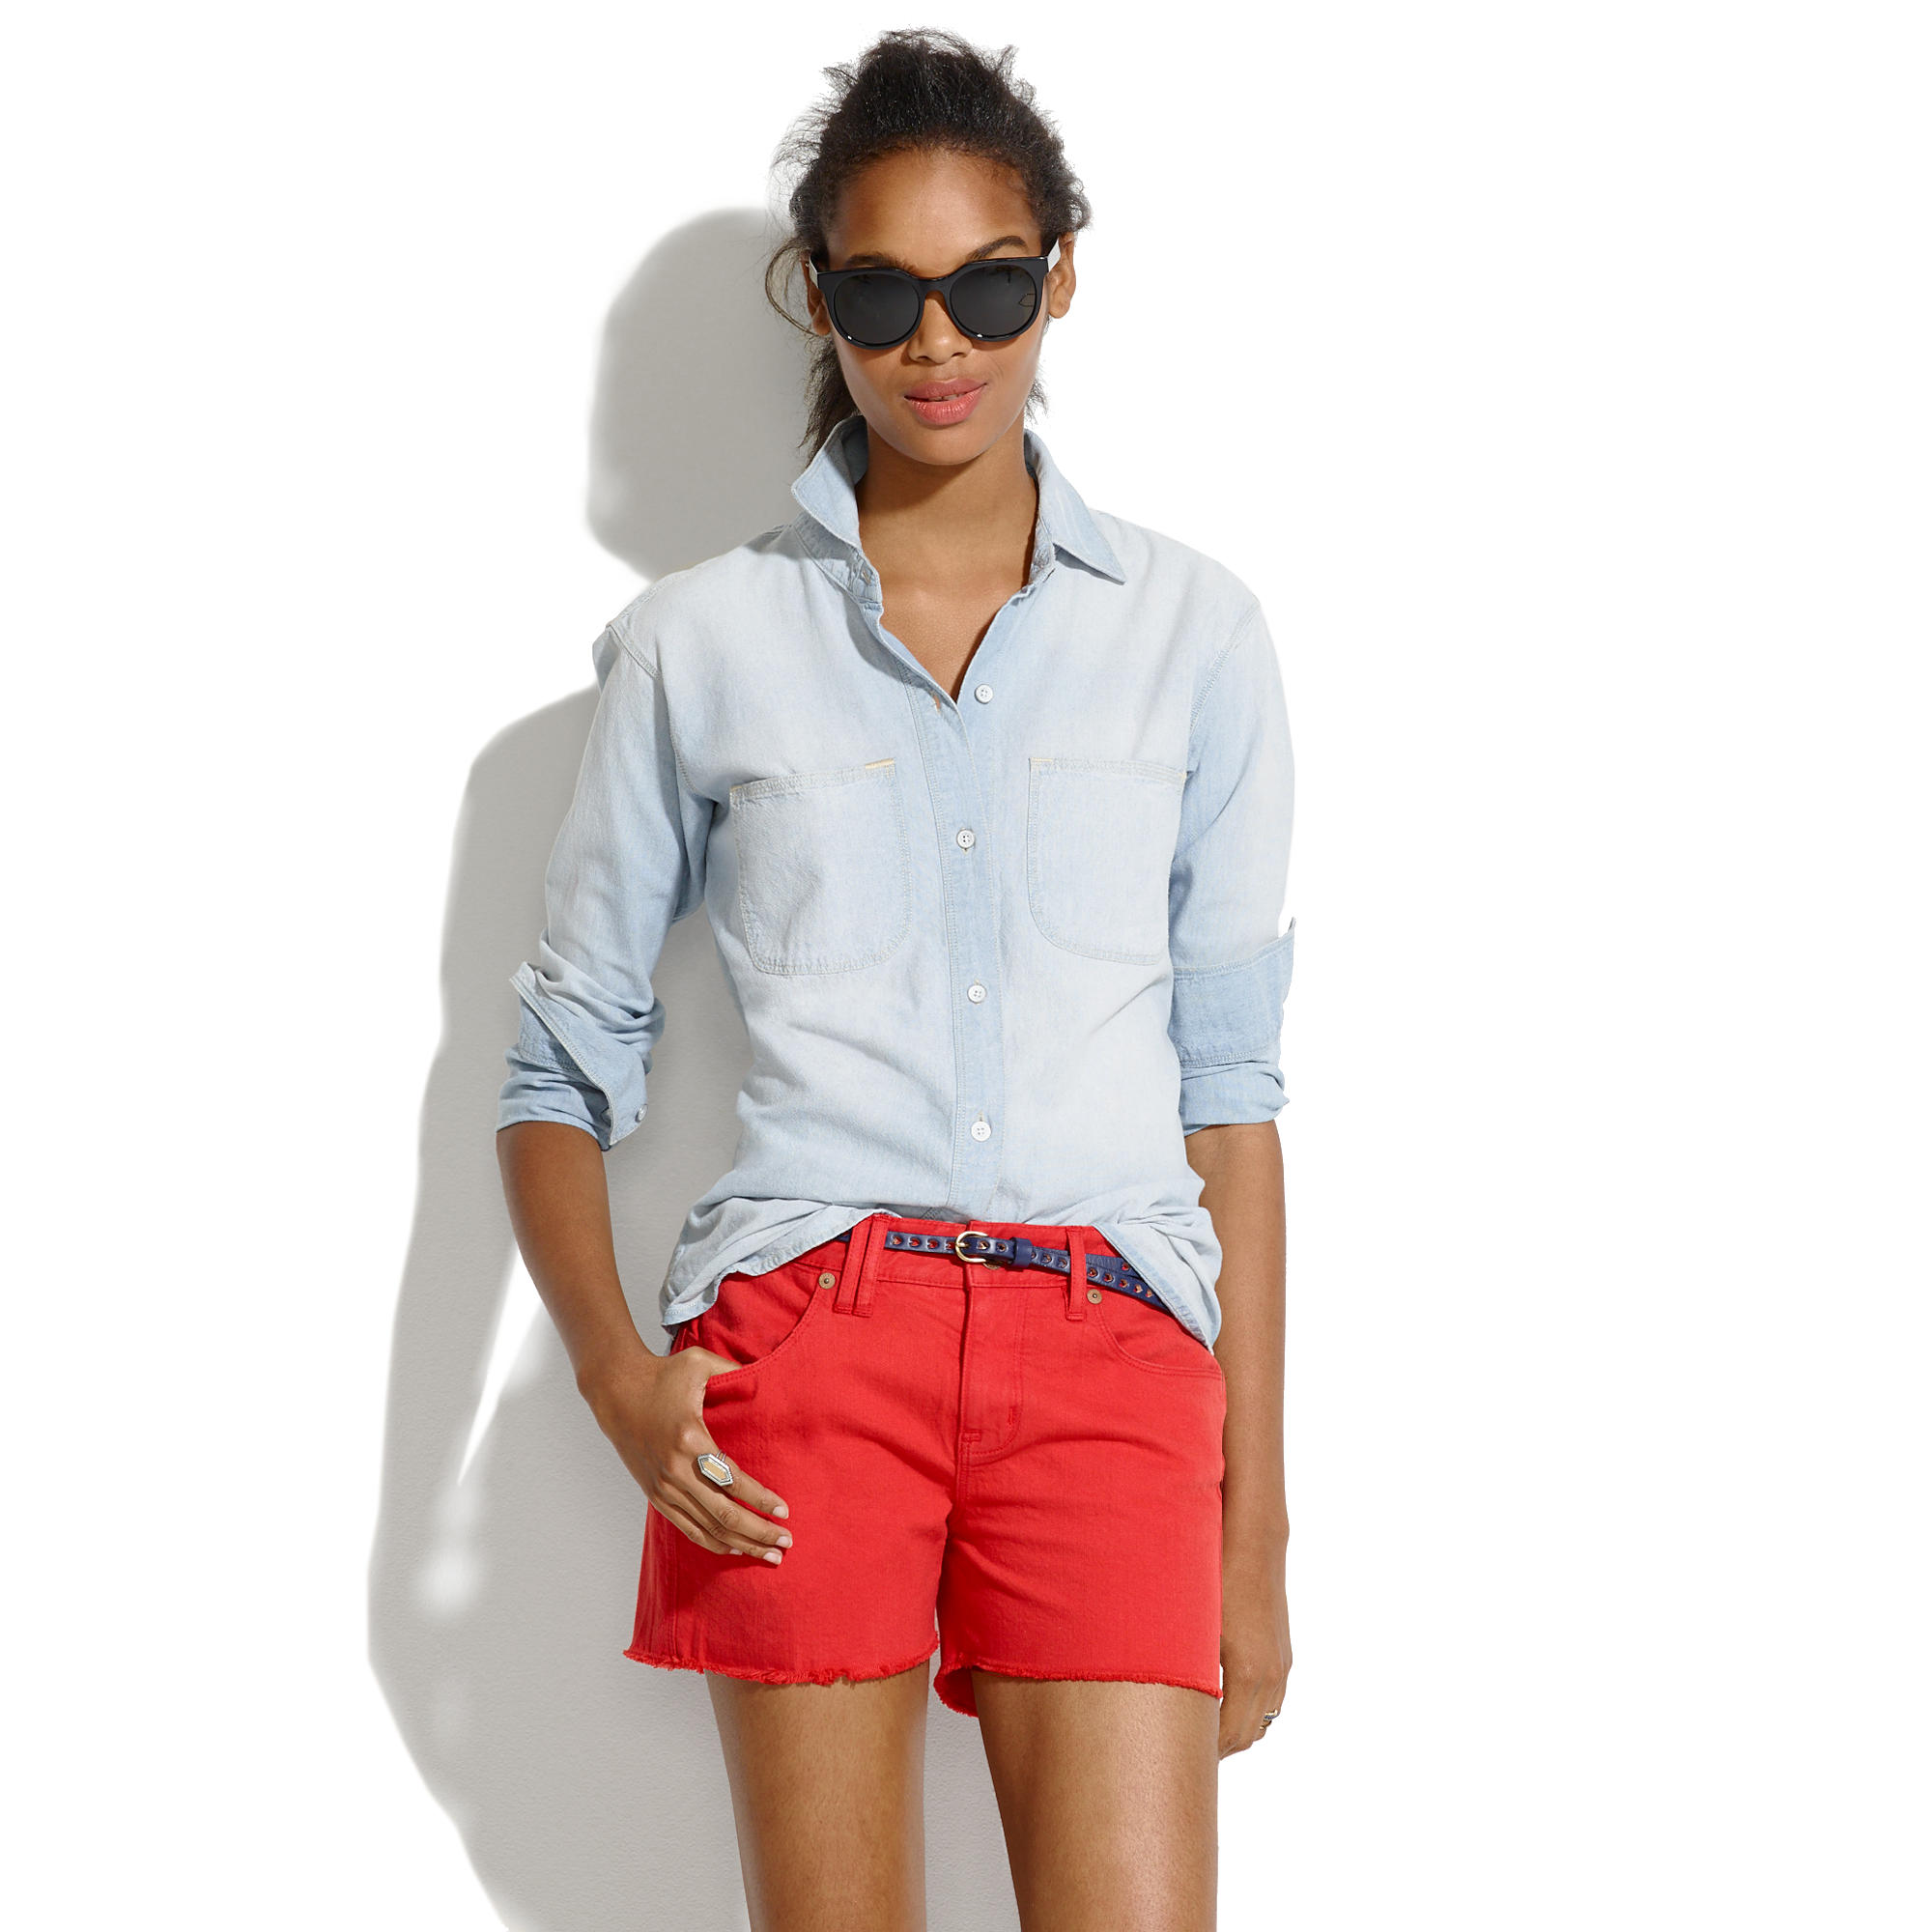 Denim Cutoff Shorts in Scarborough Red : DENIM | Madewell